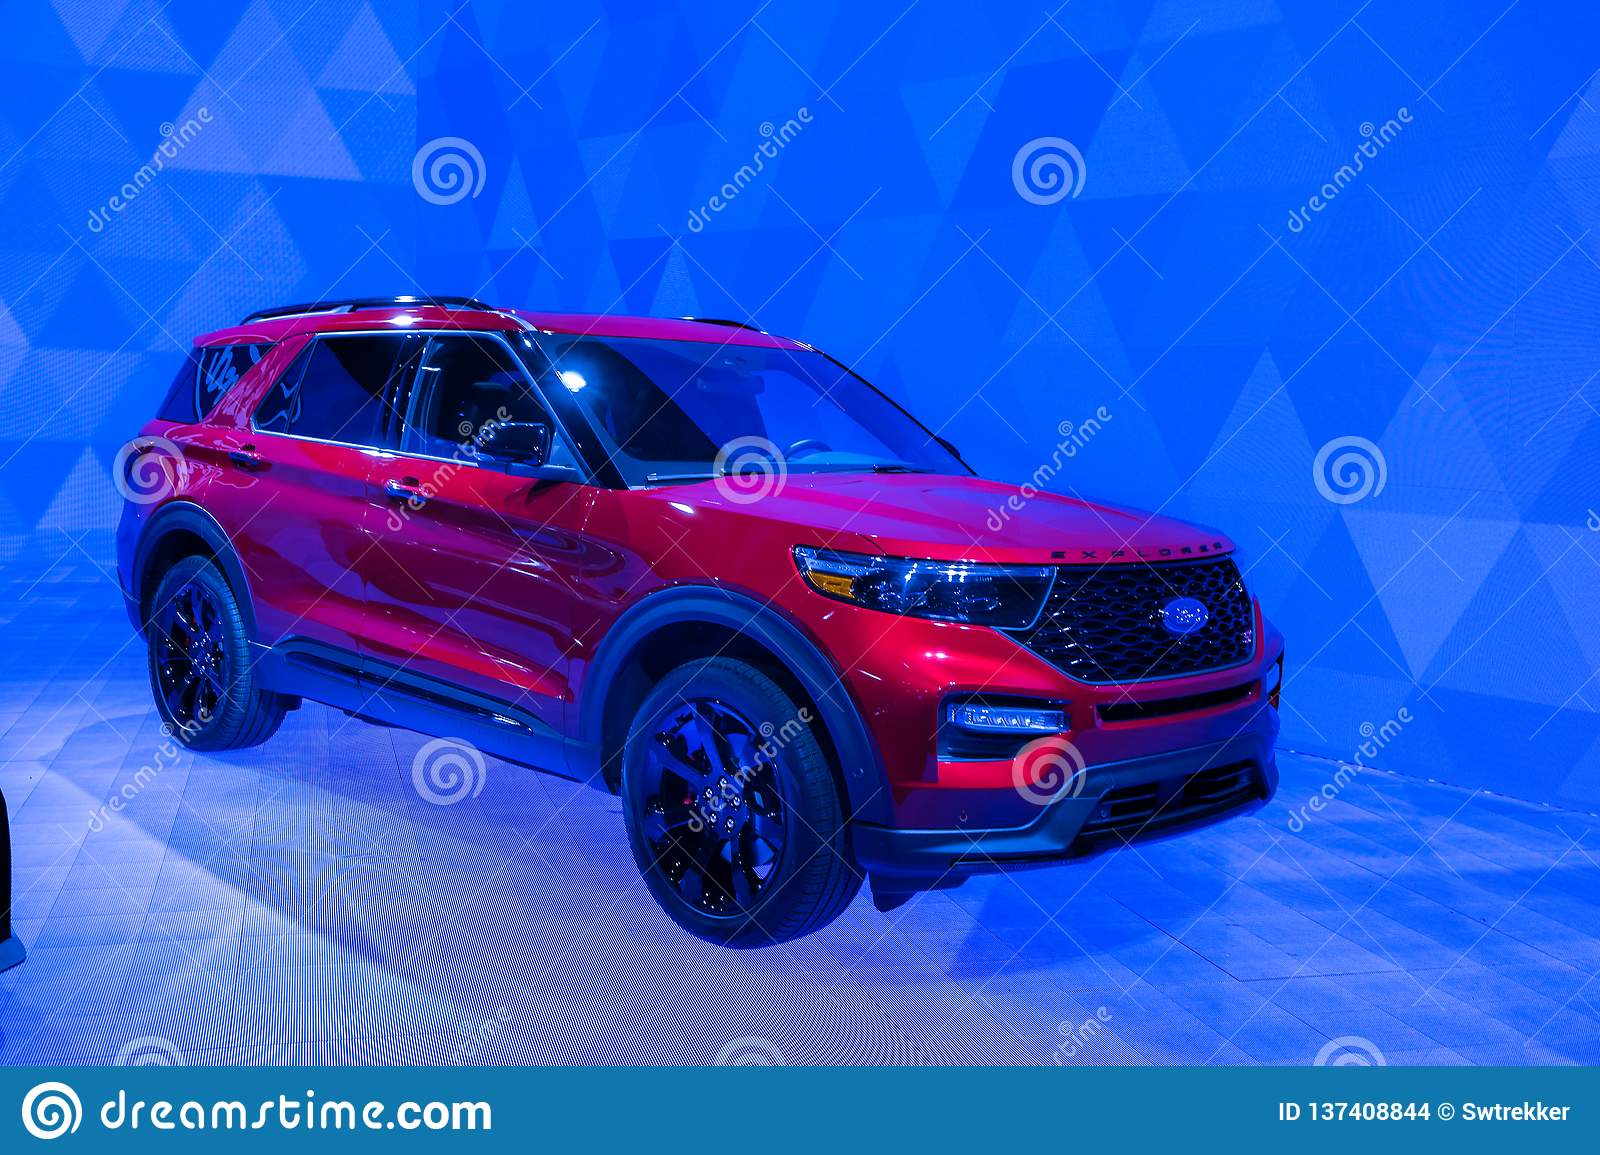 North American Auto Show 2020.2020 Ford Explorer Editorial Stock Image Image Of American